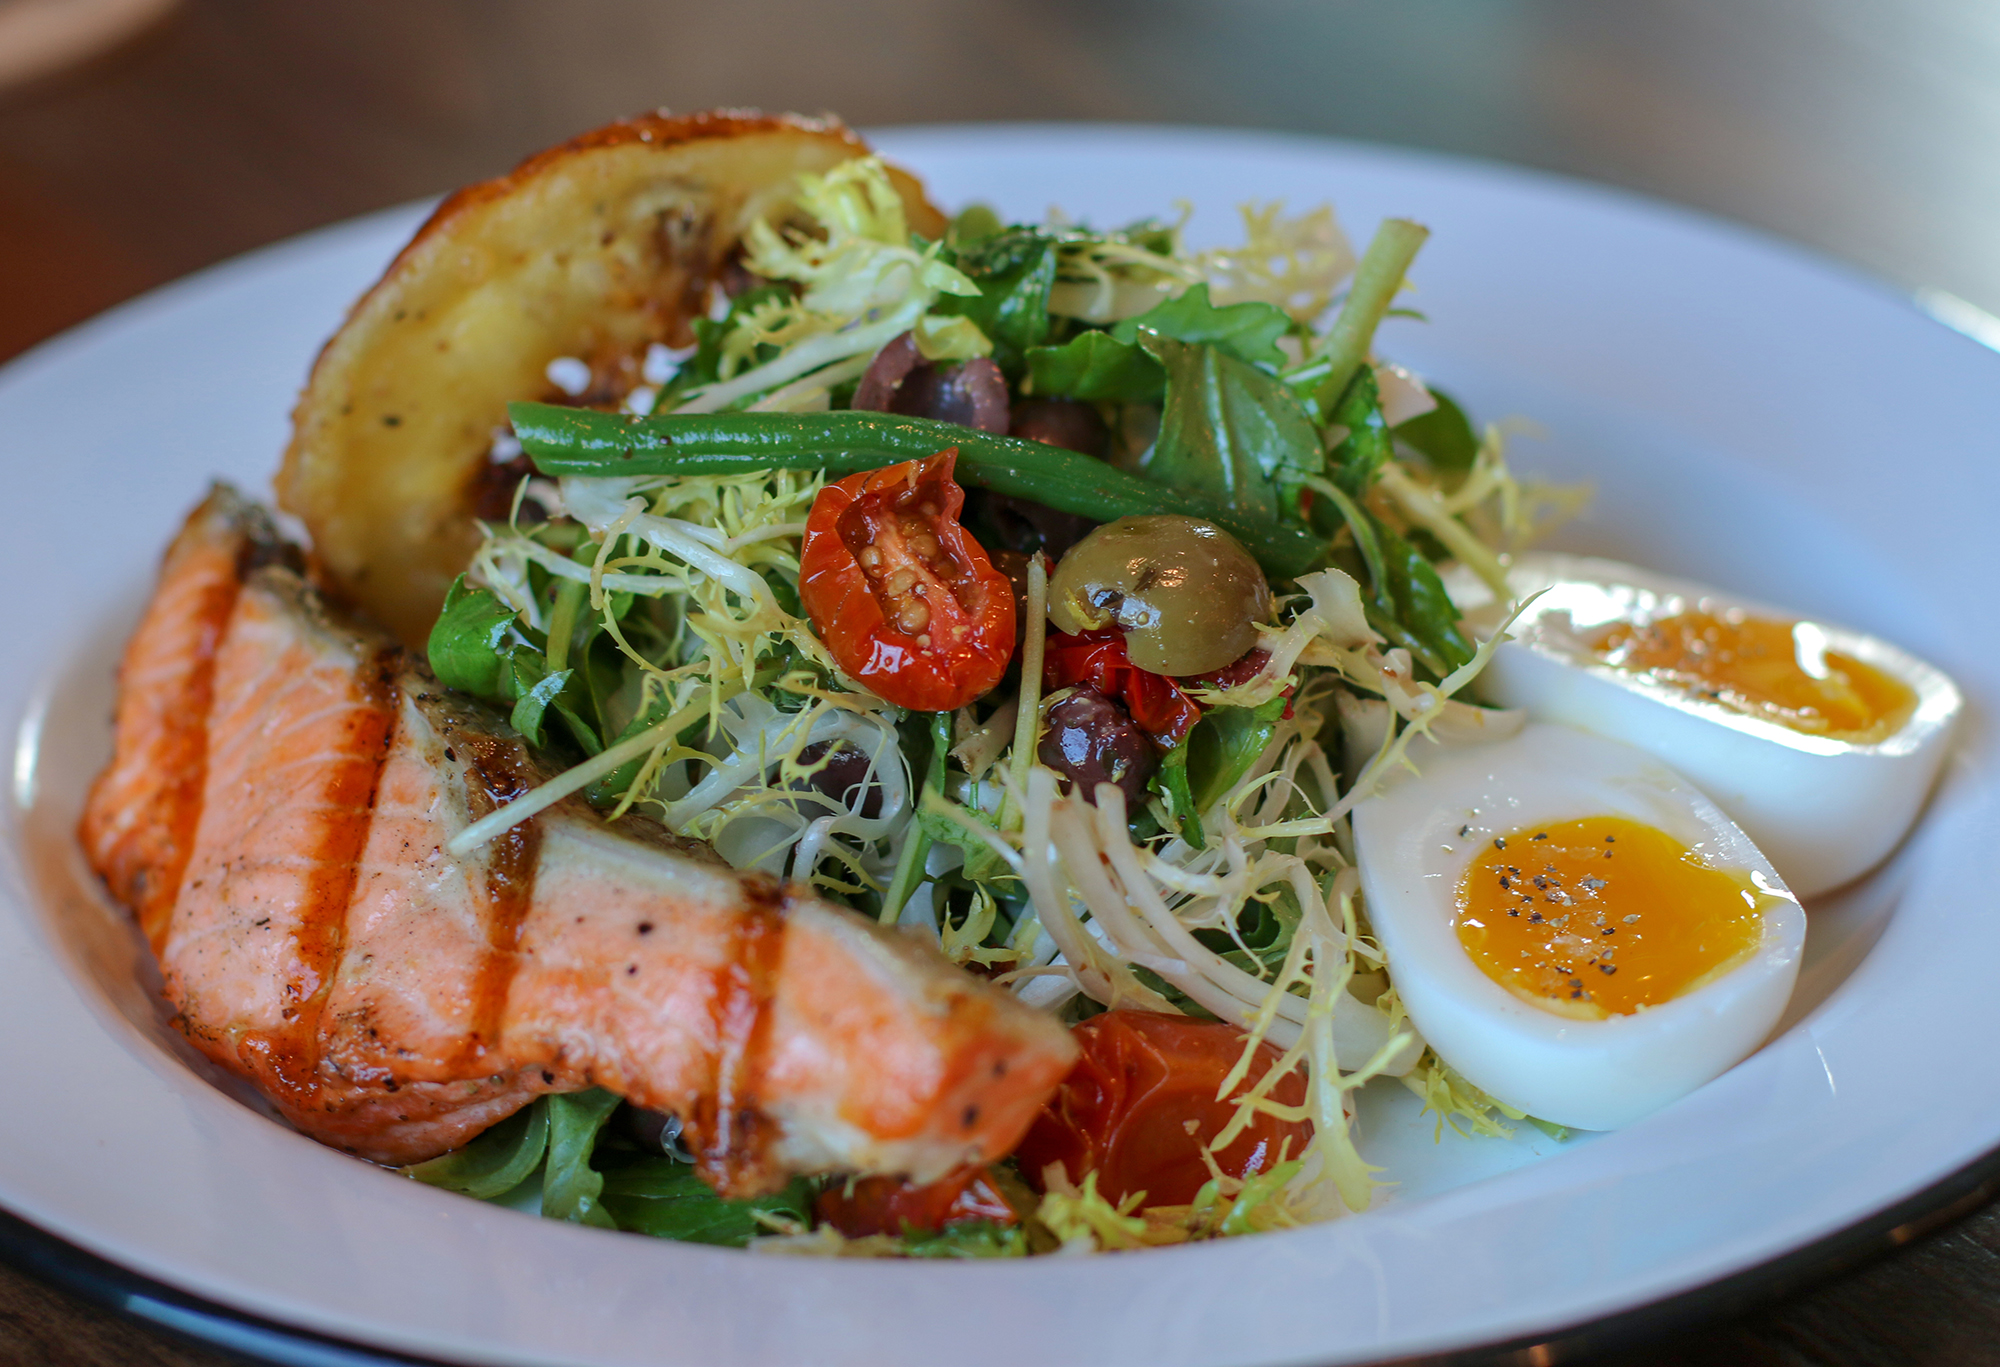 Grilled steelhead salad with chilled soft boiled egg, haricot vert, olives, frisee, mizuna, smoked tomato, meyer vinaigrette, tempura meyer lemon at Tips Roadside in Kenwood. Heather Irwin/PD